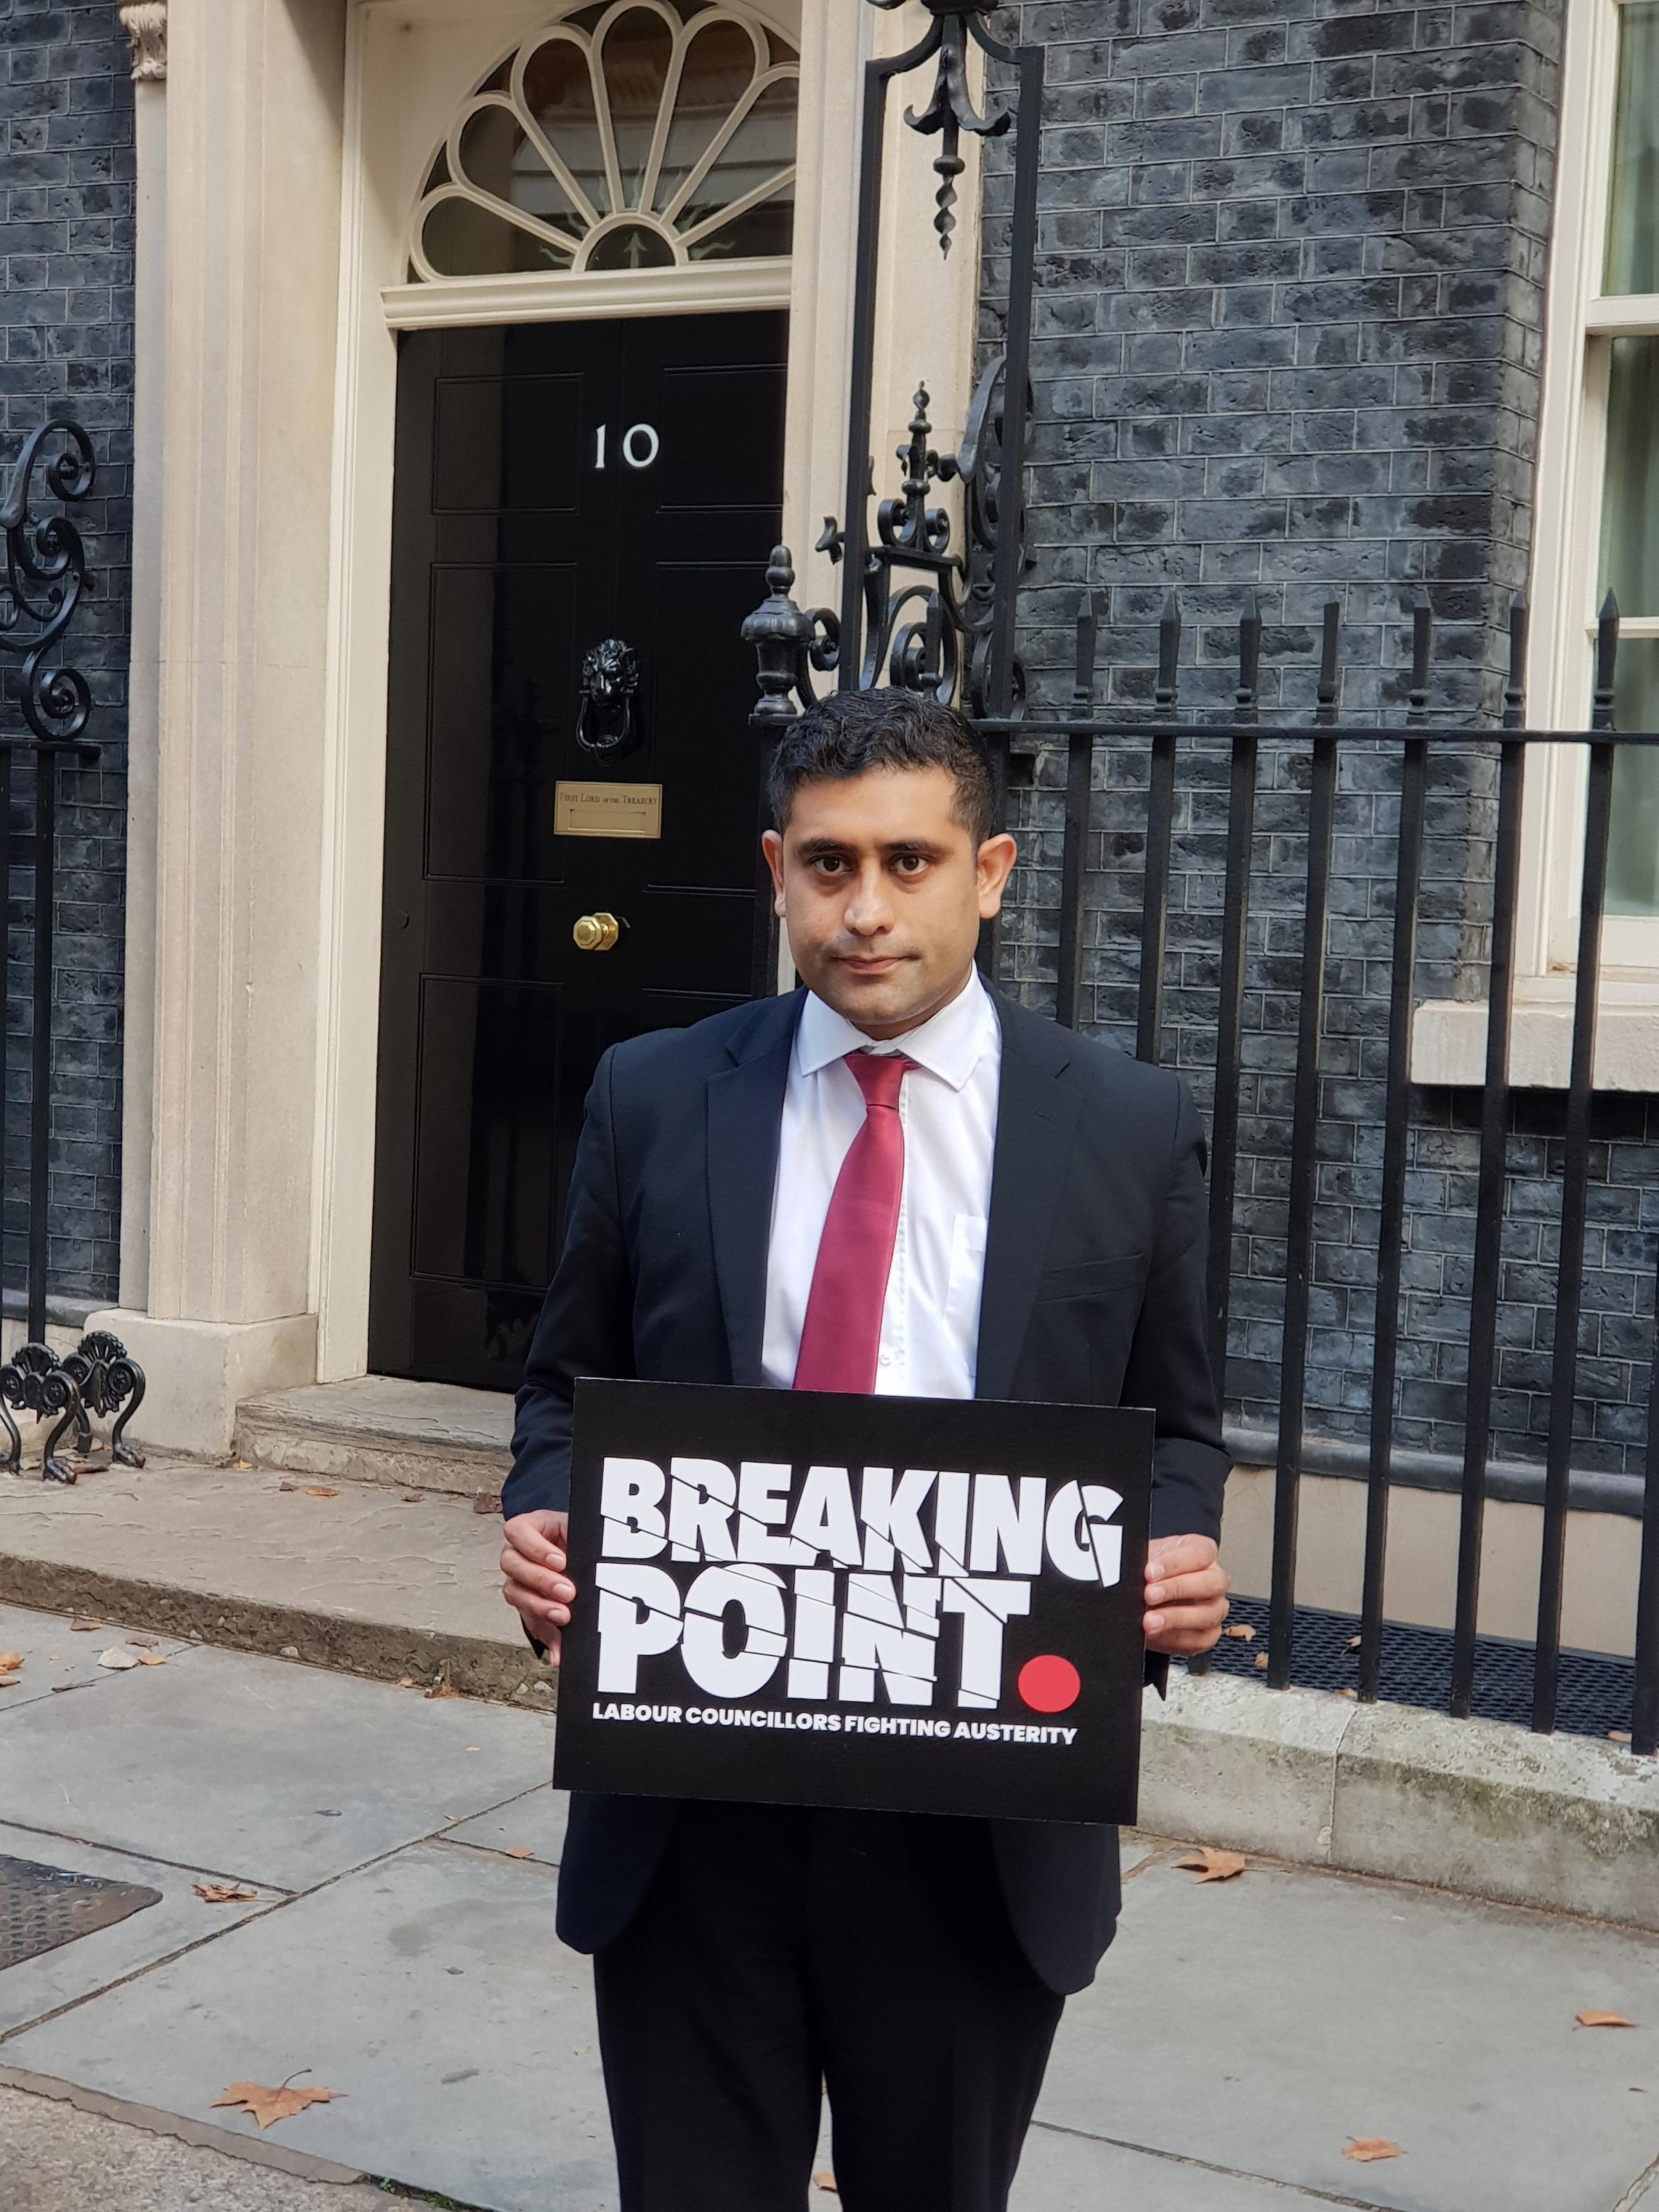 AUSTERITY: The Leader of Bury Council, Cllr Rishi Shori, outside No.10 Downing Street